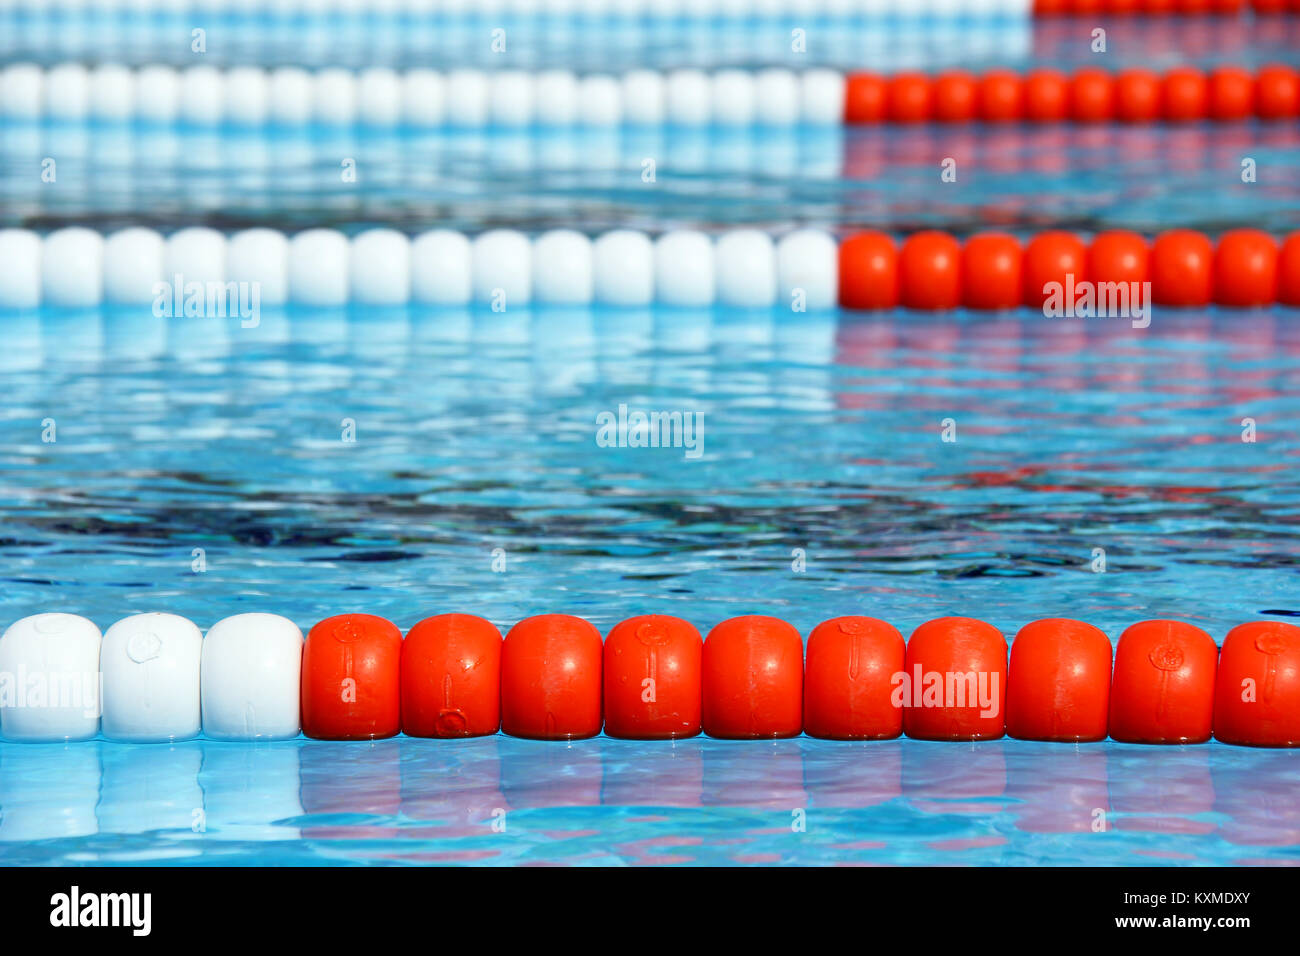 Swimming Lane Rope Stock Photos Amp Swimming Lane Rope Stock